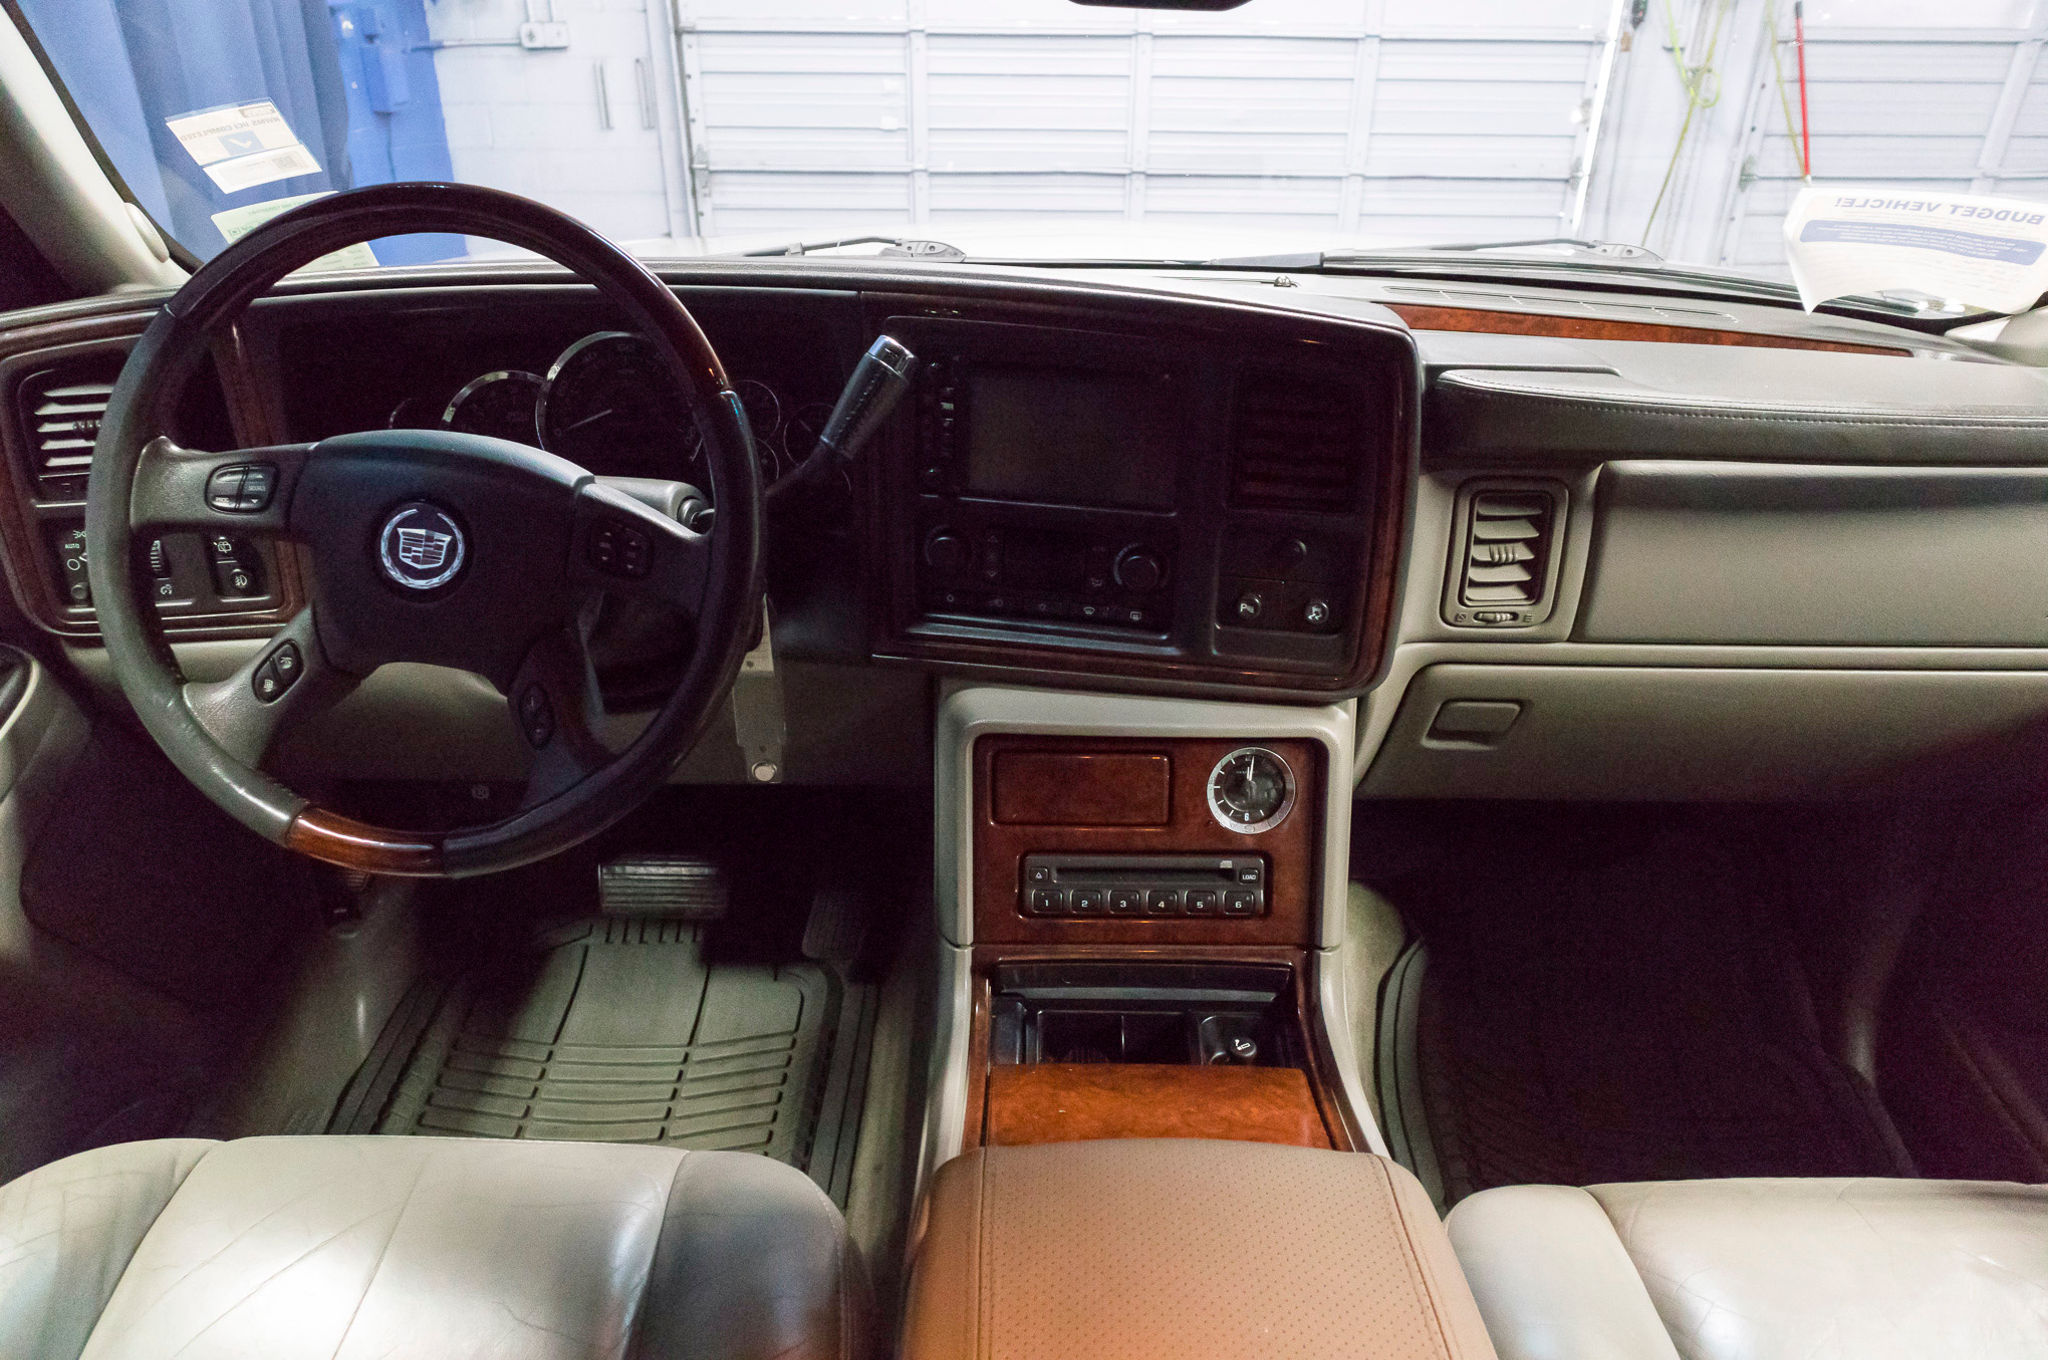 on auto salvage of carfinder columbia view l online copart left cadillac in black sale cert title auctions for lot sc escalade en